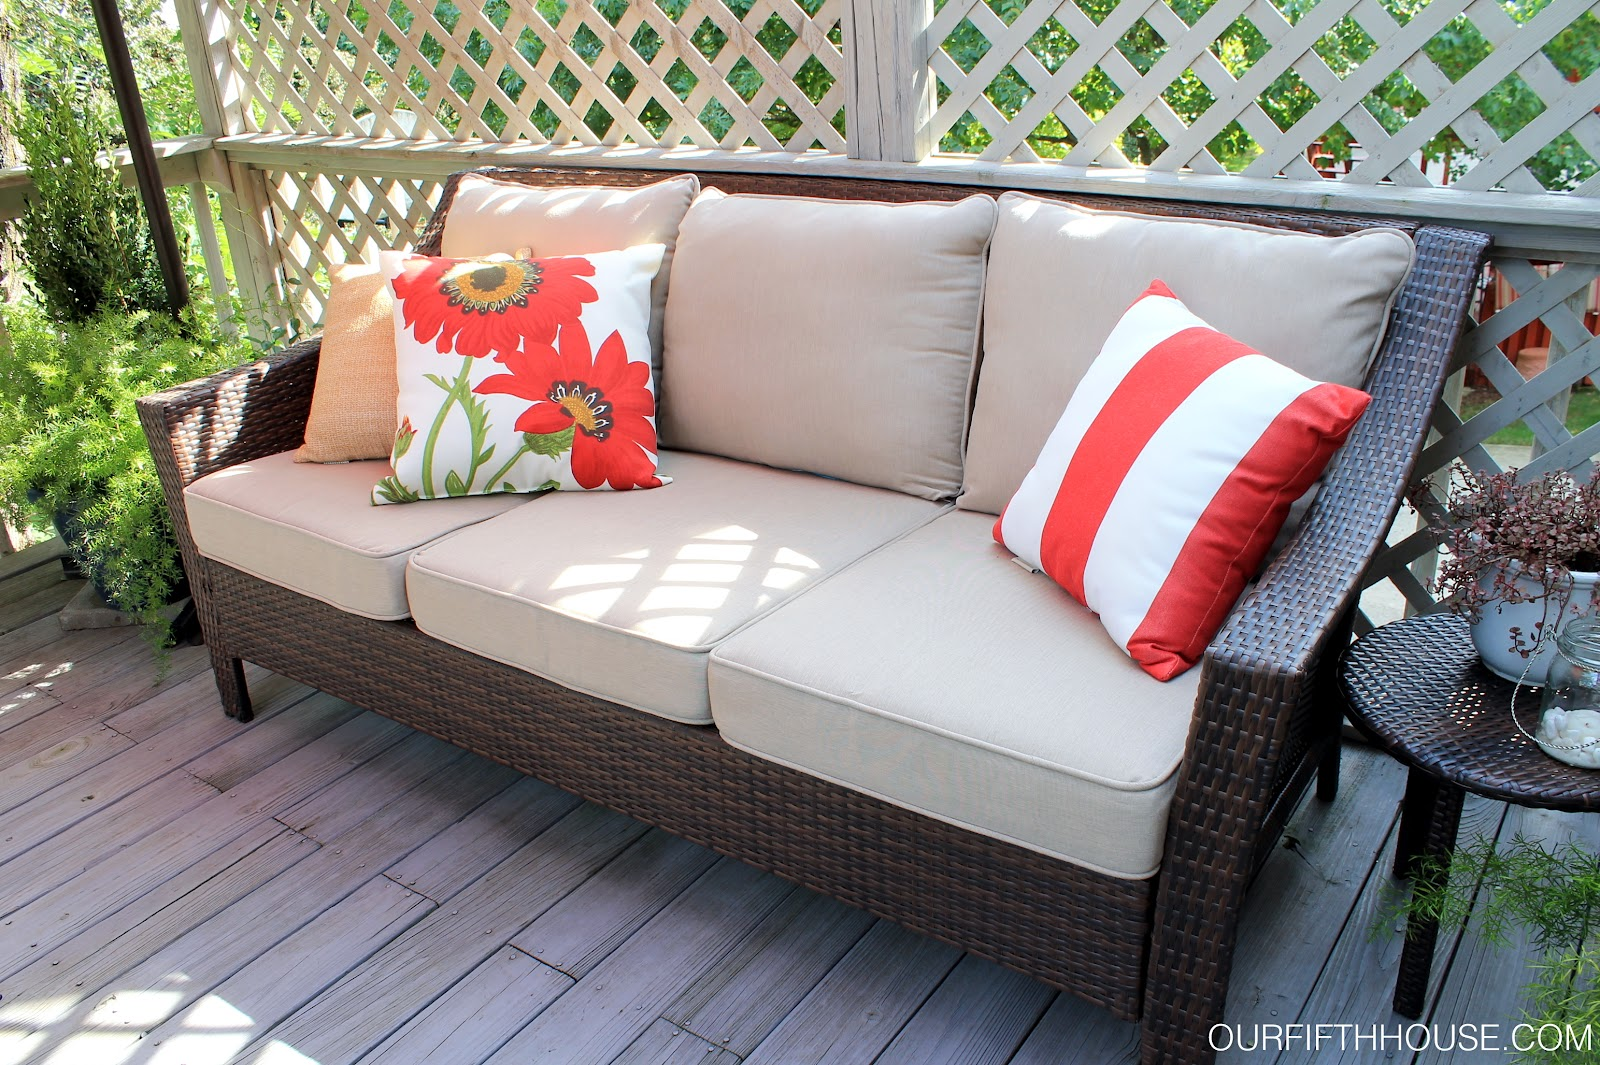 Our Fifth House: Outdoor Living (Deck Updates)